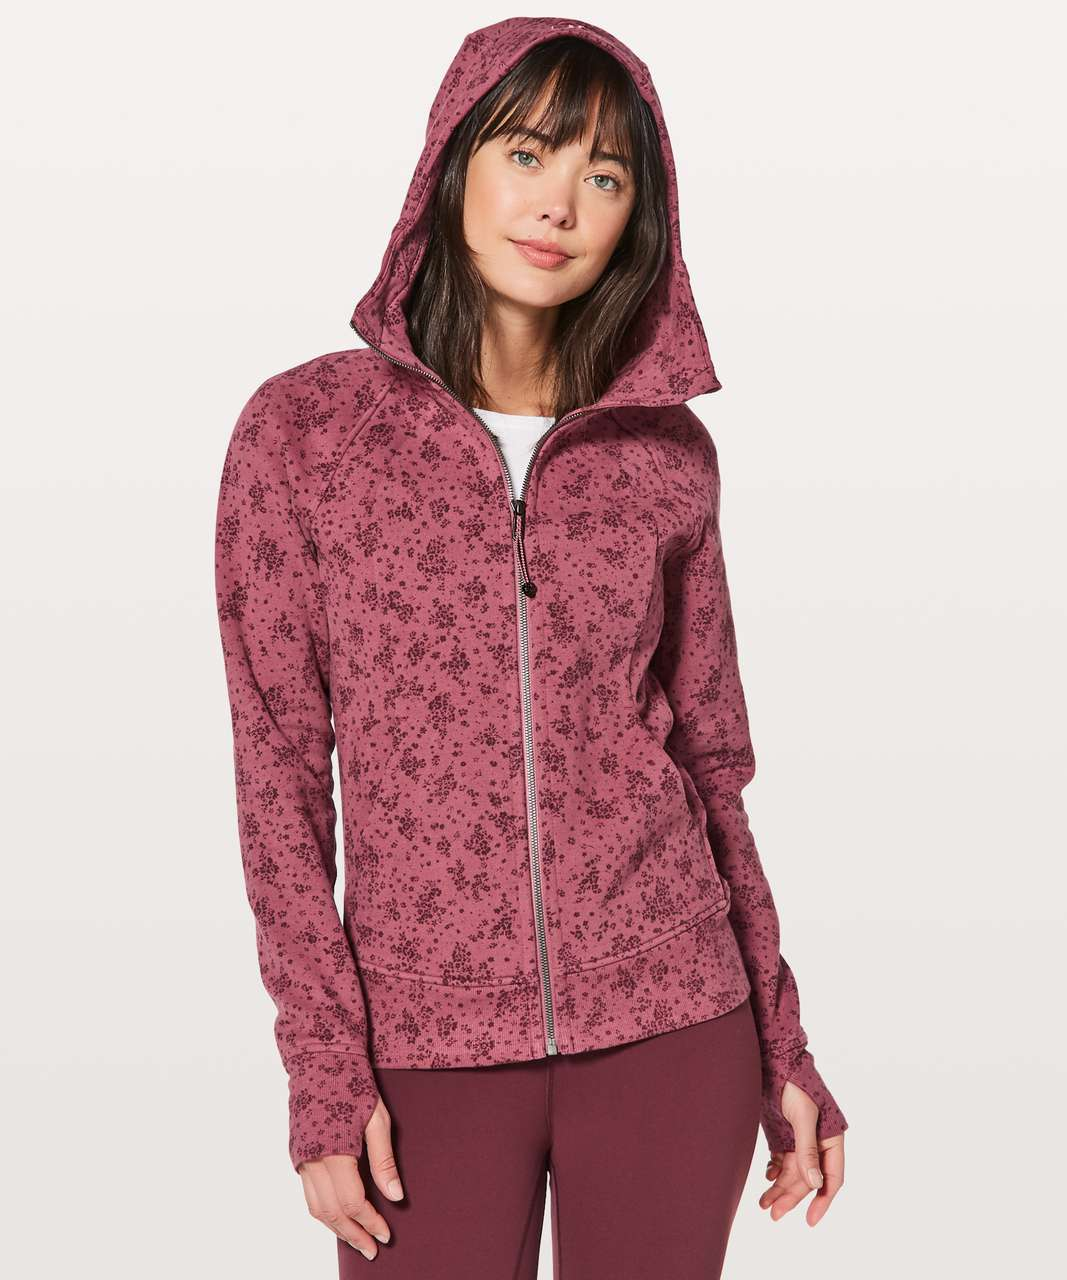 Lululemon Scuba Hoodie *Light Cotton Fleece - Pixie Floral So Merlot Redwood / So Merlot